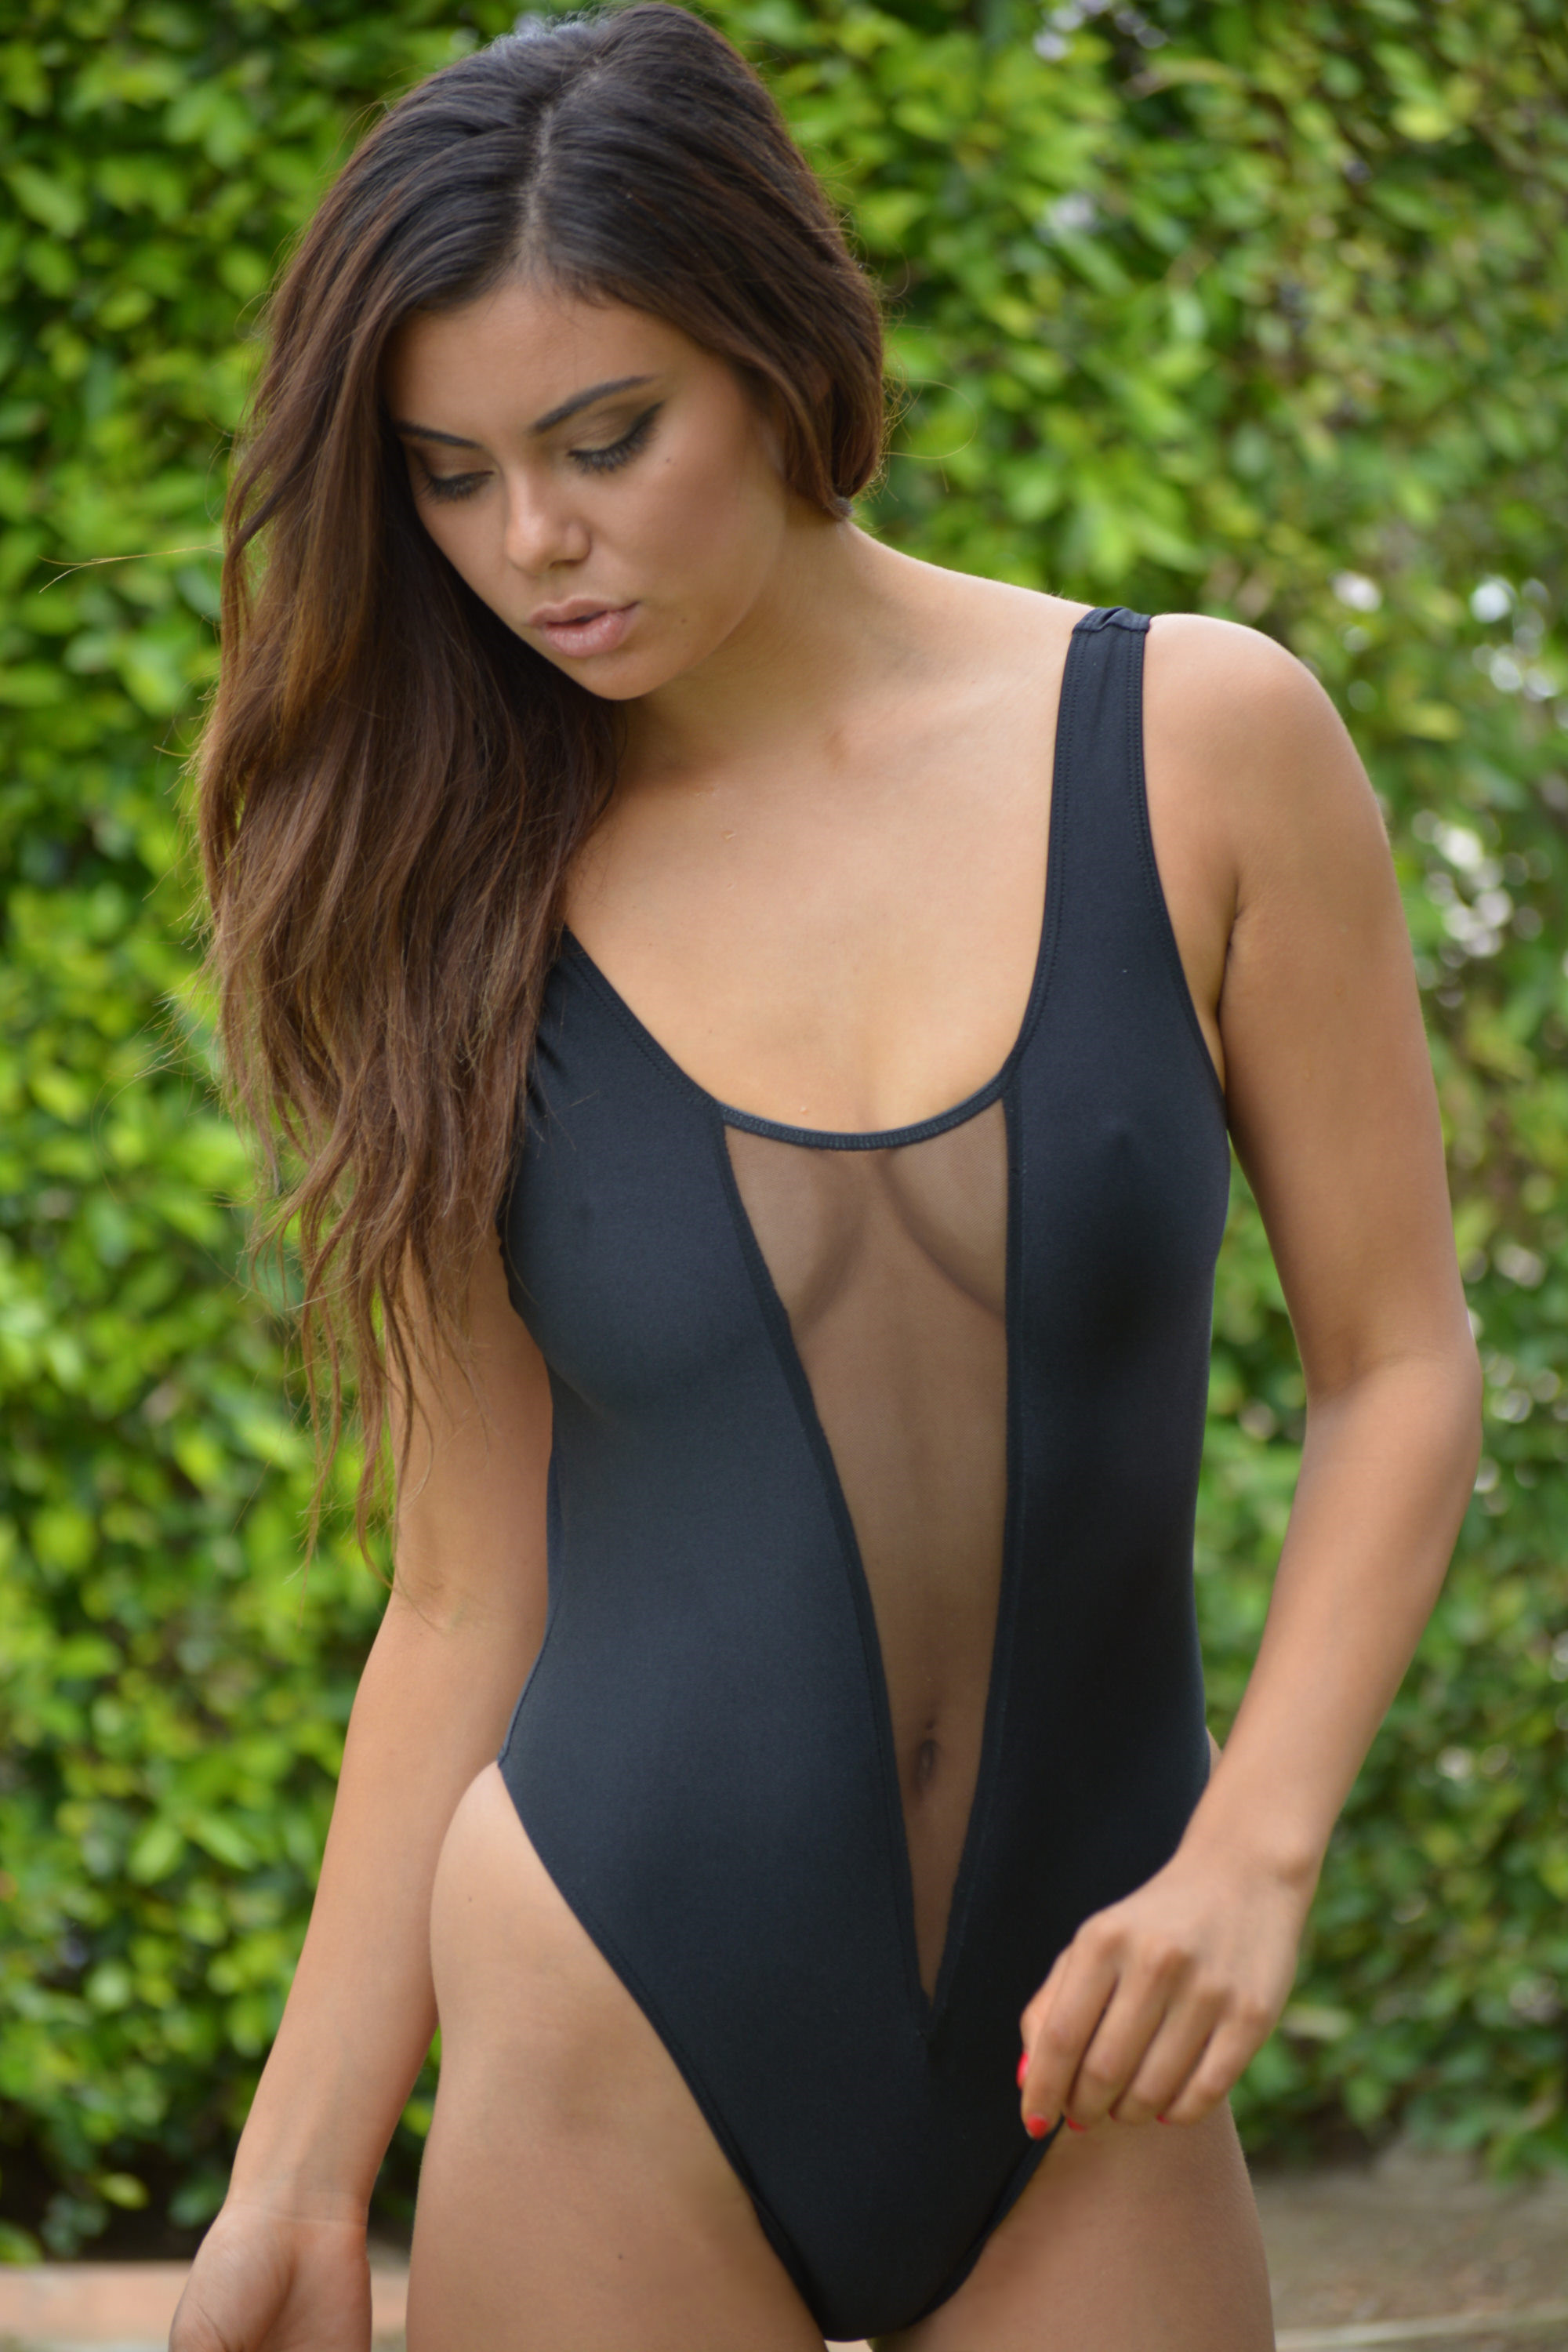 Sheer swimsuit